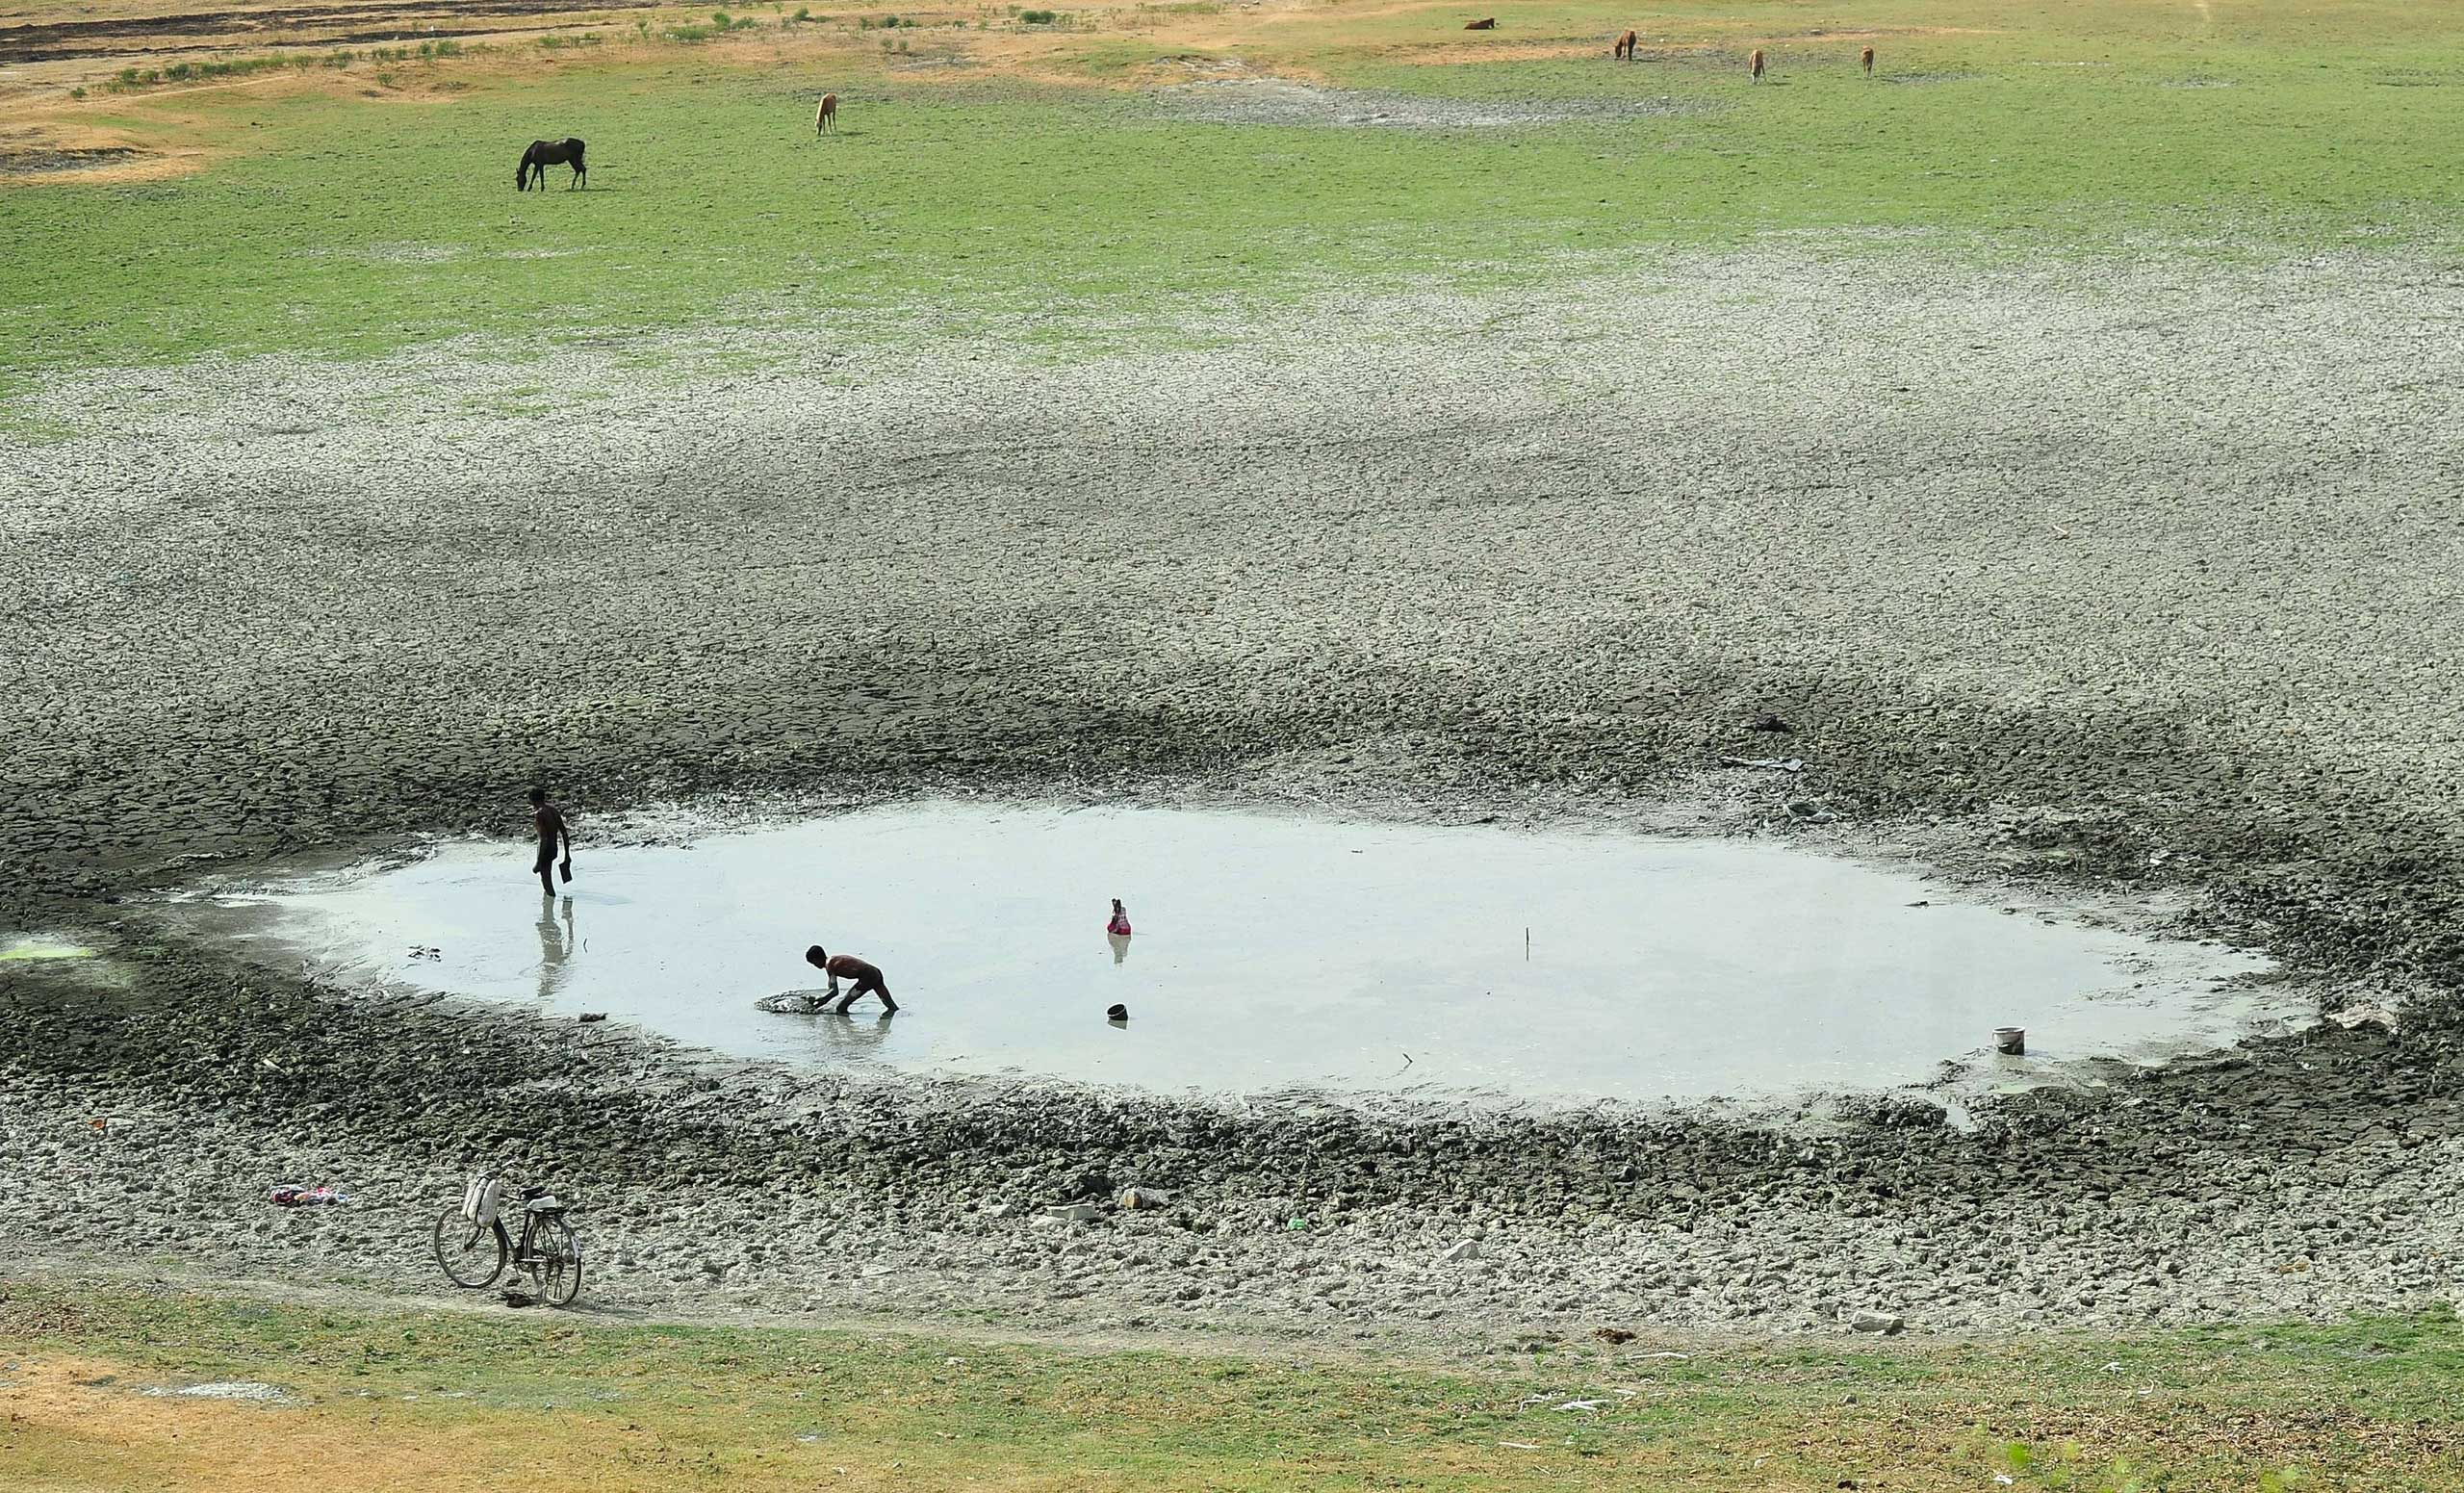 Indian fishermen catch fish in a shrunken pond in the village of Phaphamau on the outskirts of Allahabad on May 26, 2015.